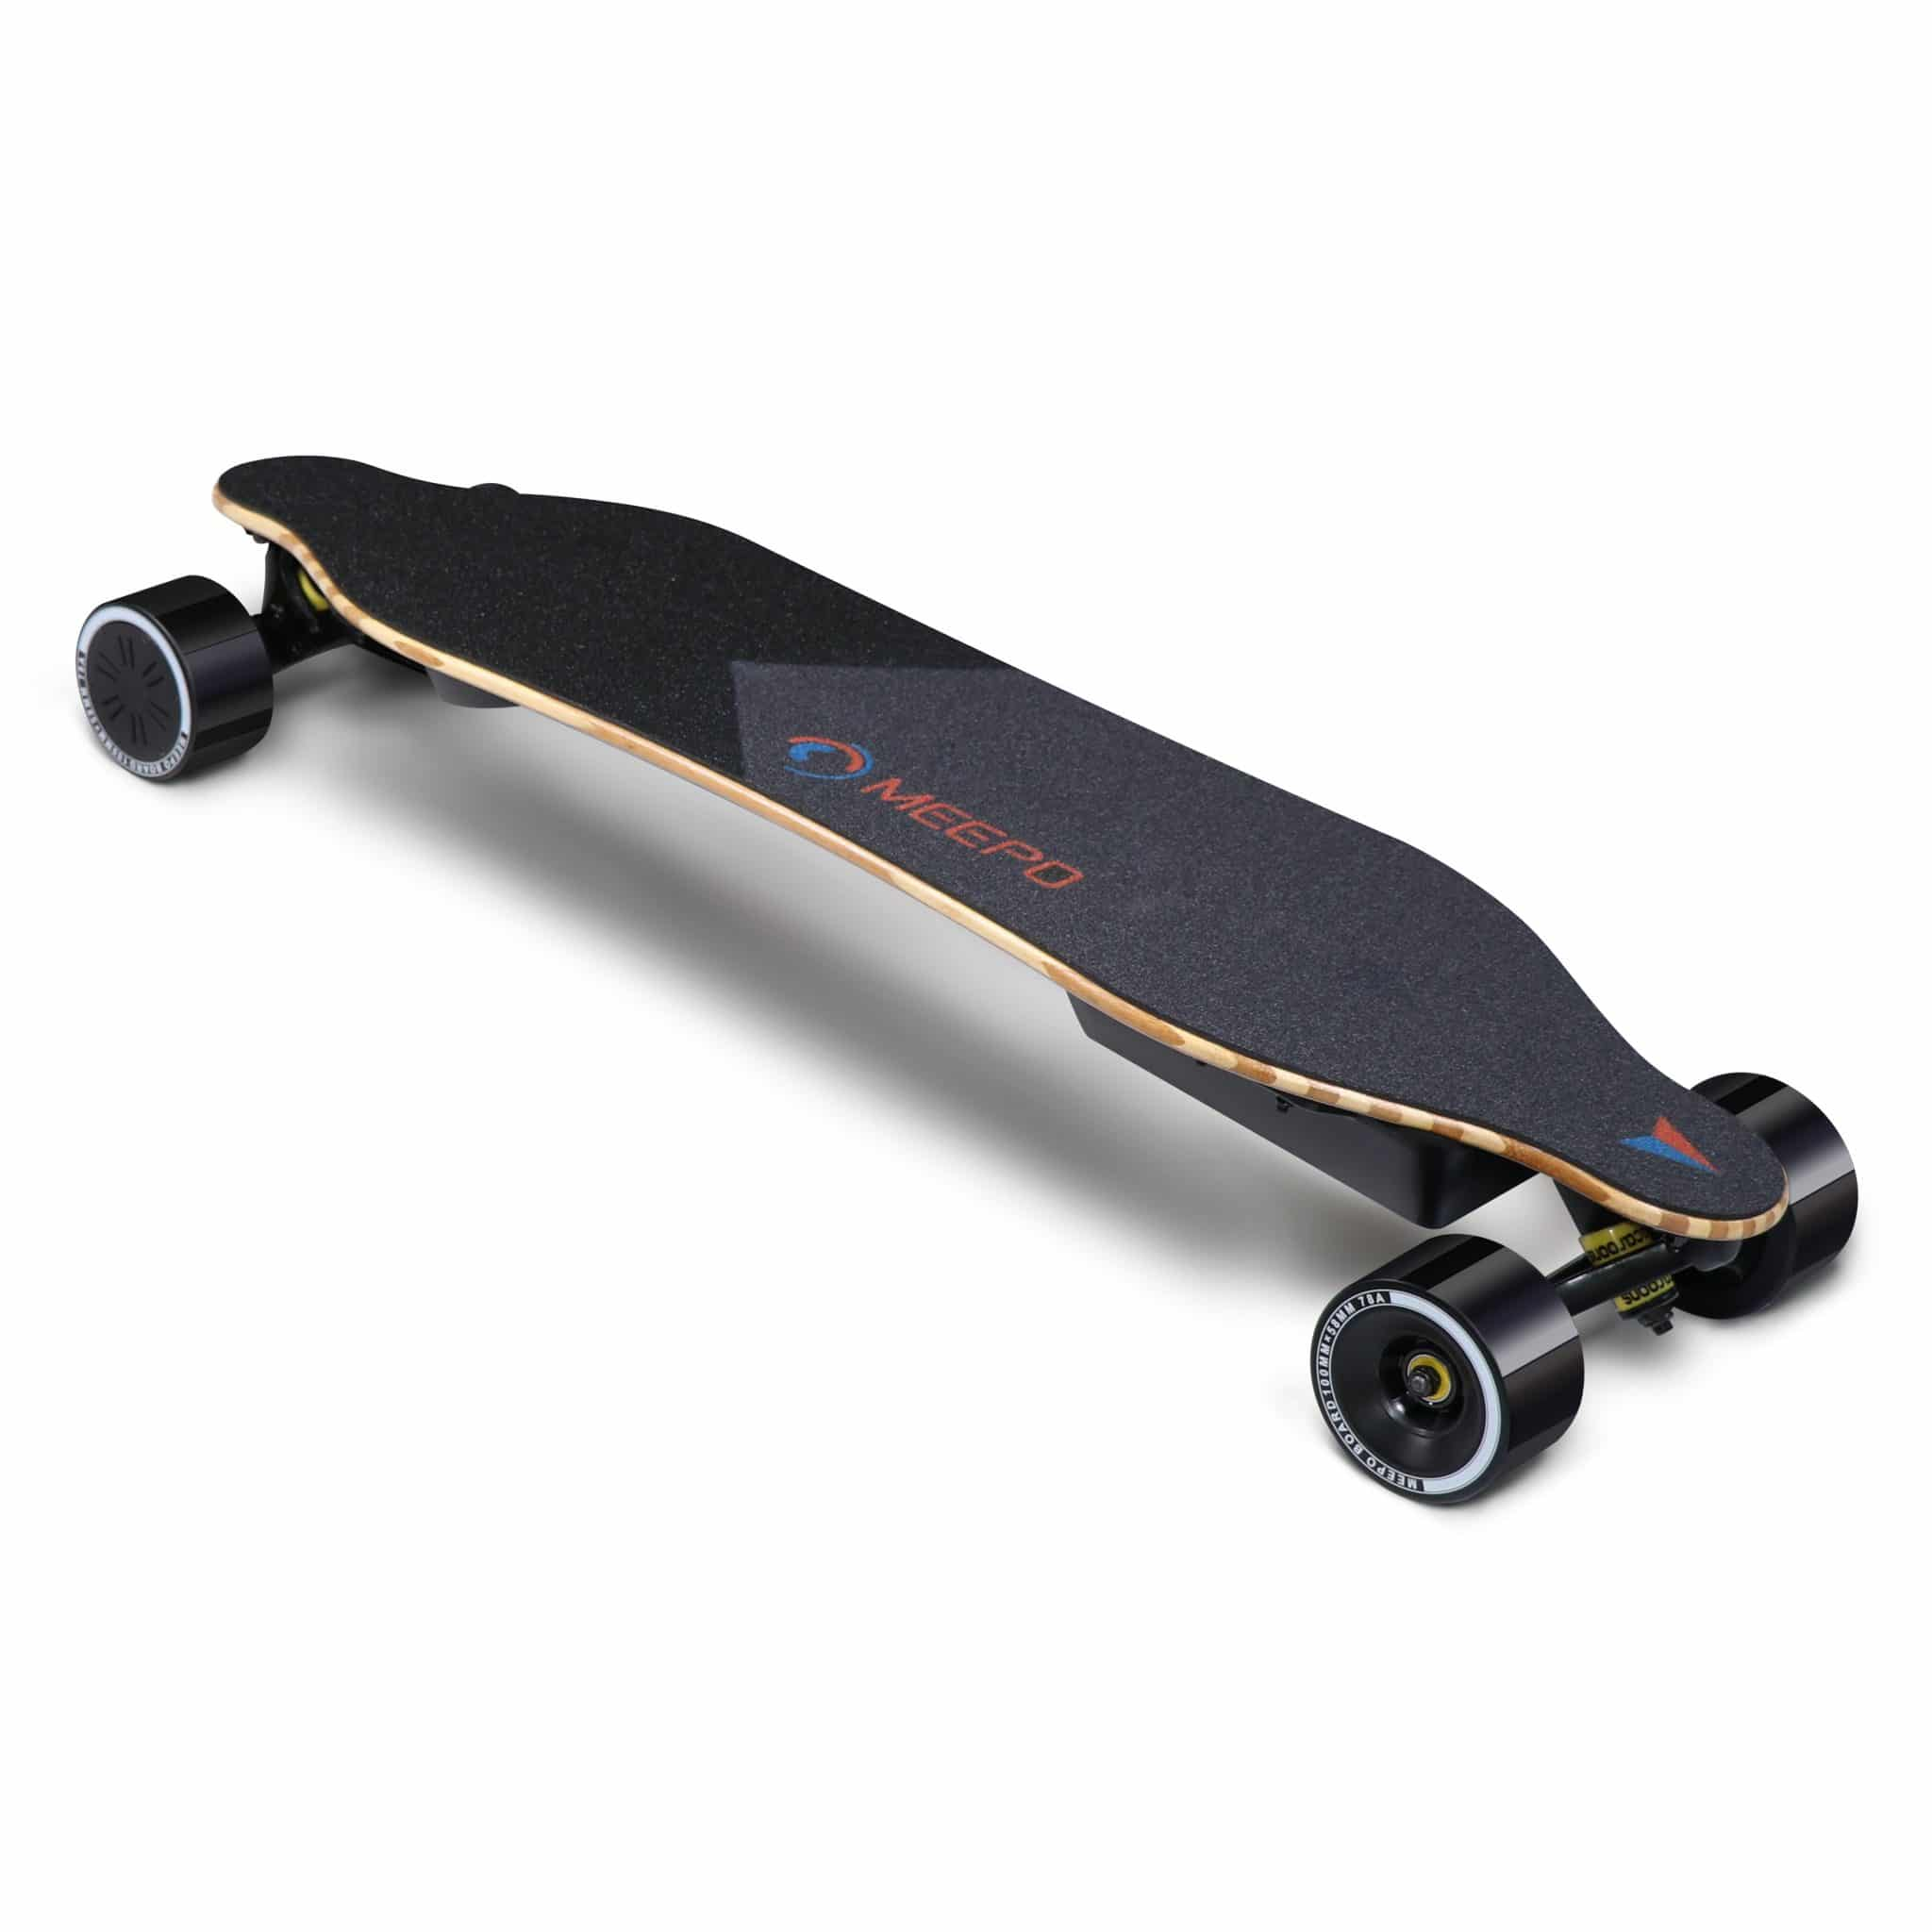 Meepo Electric Skateboards / Longboards Reviewed  [incl. Meepo v3]